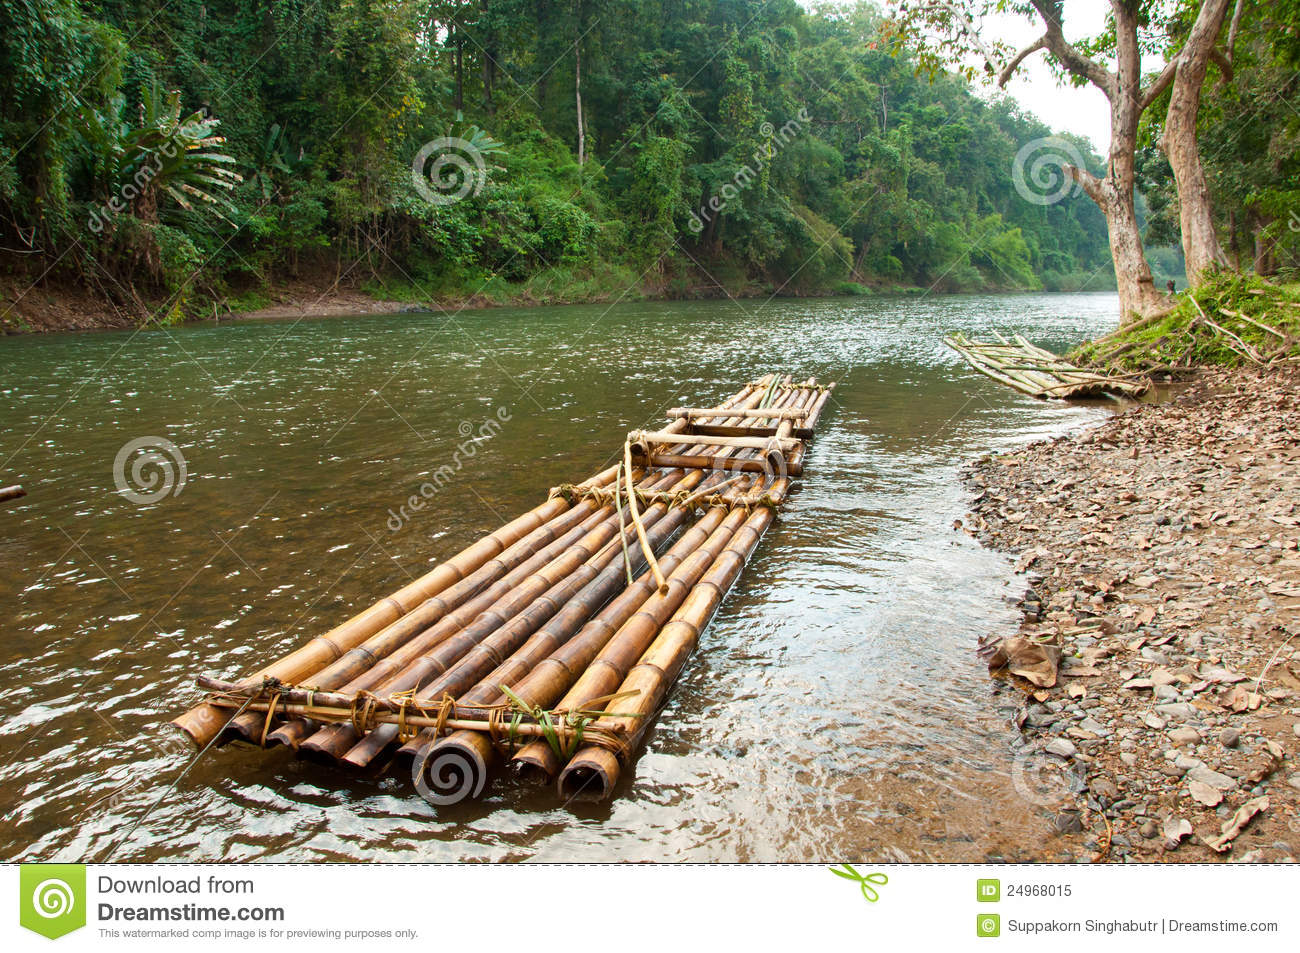 ... Raft Floating In River Royalty Free Stock Photo - Image: 24968015